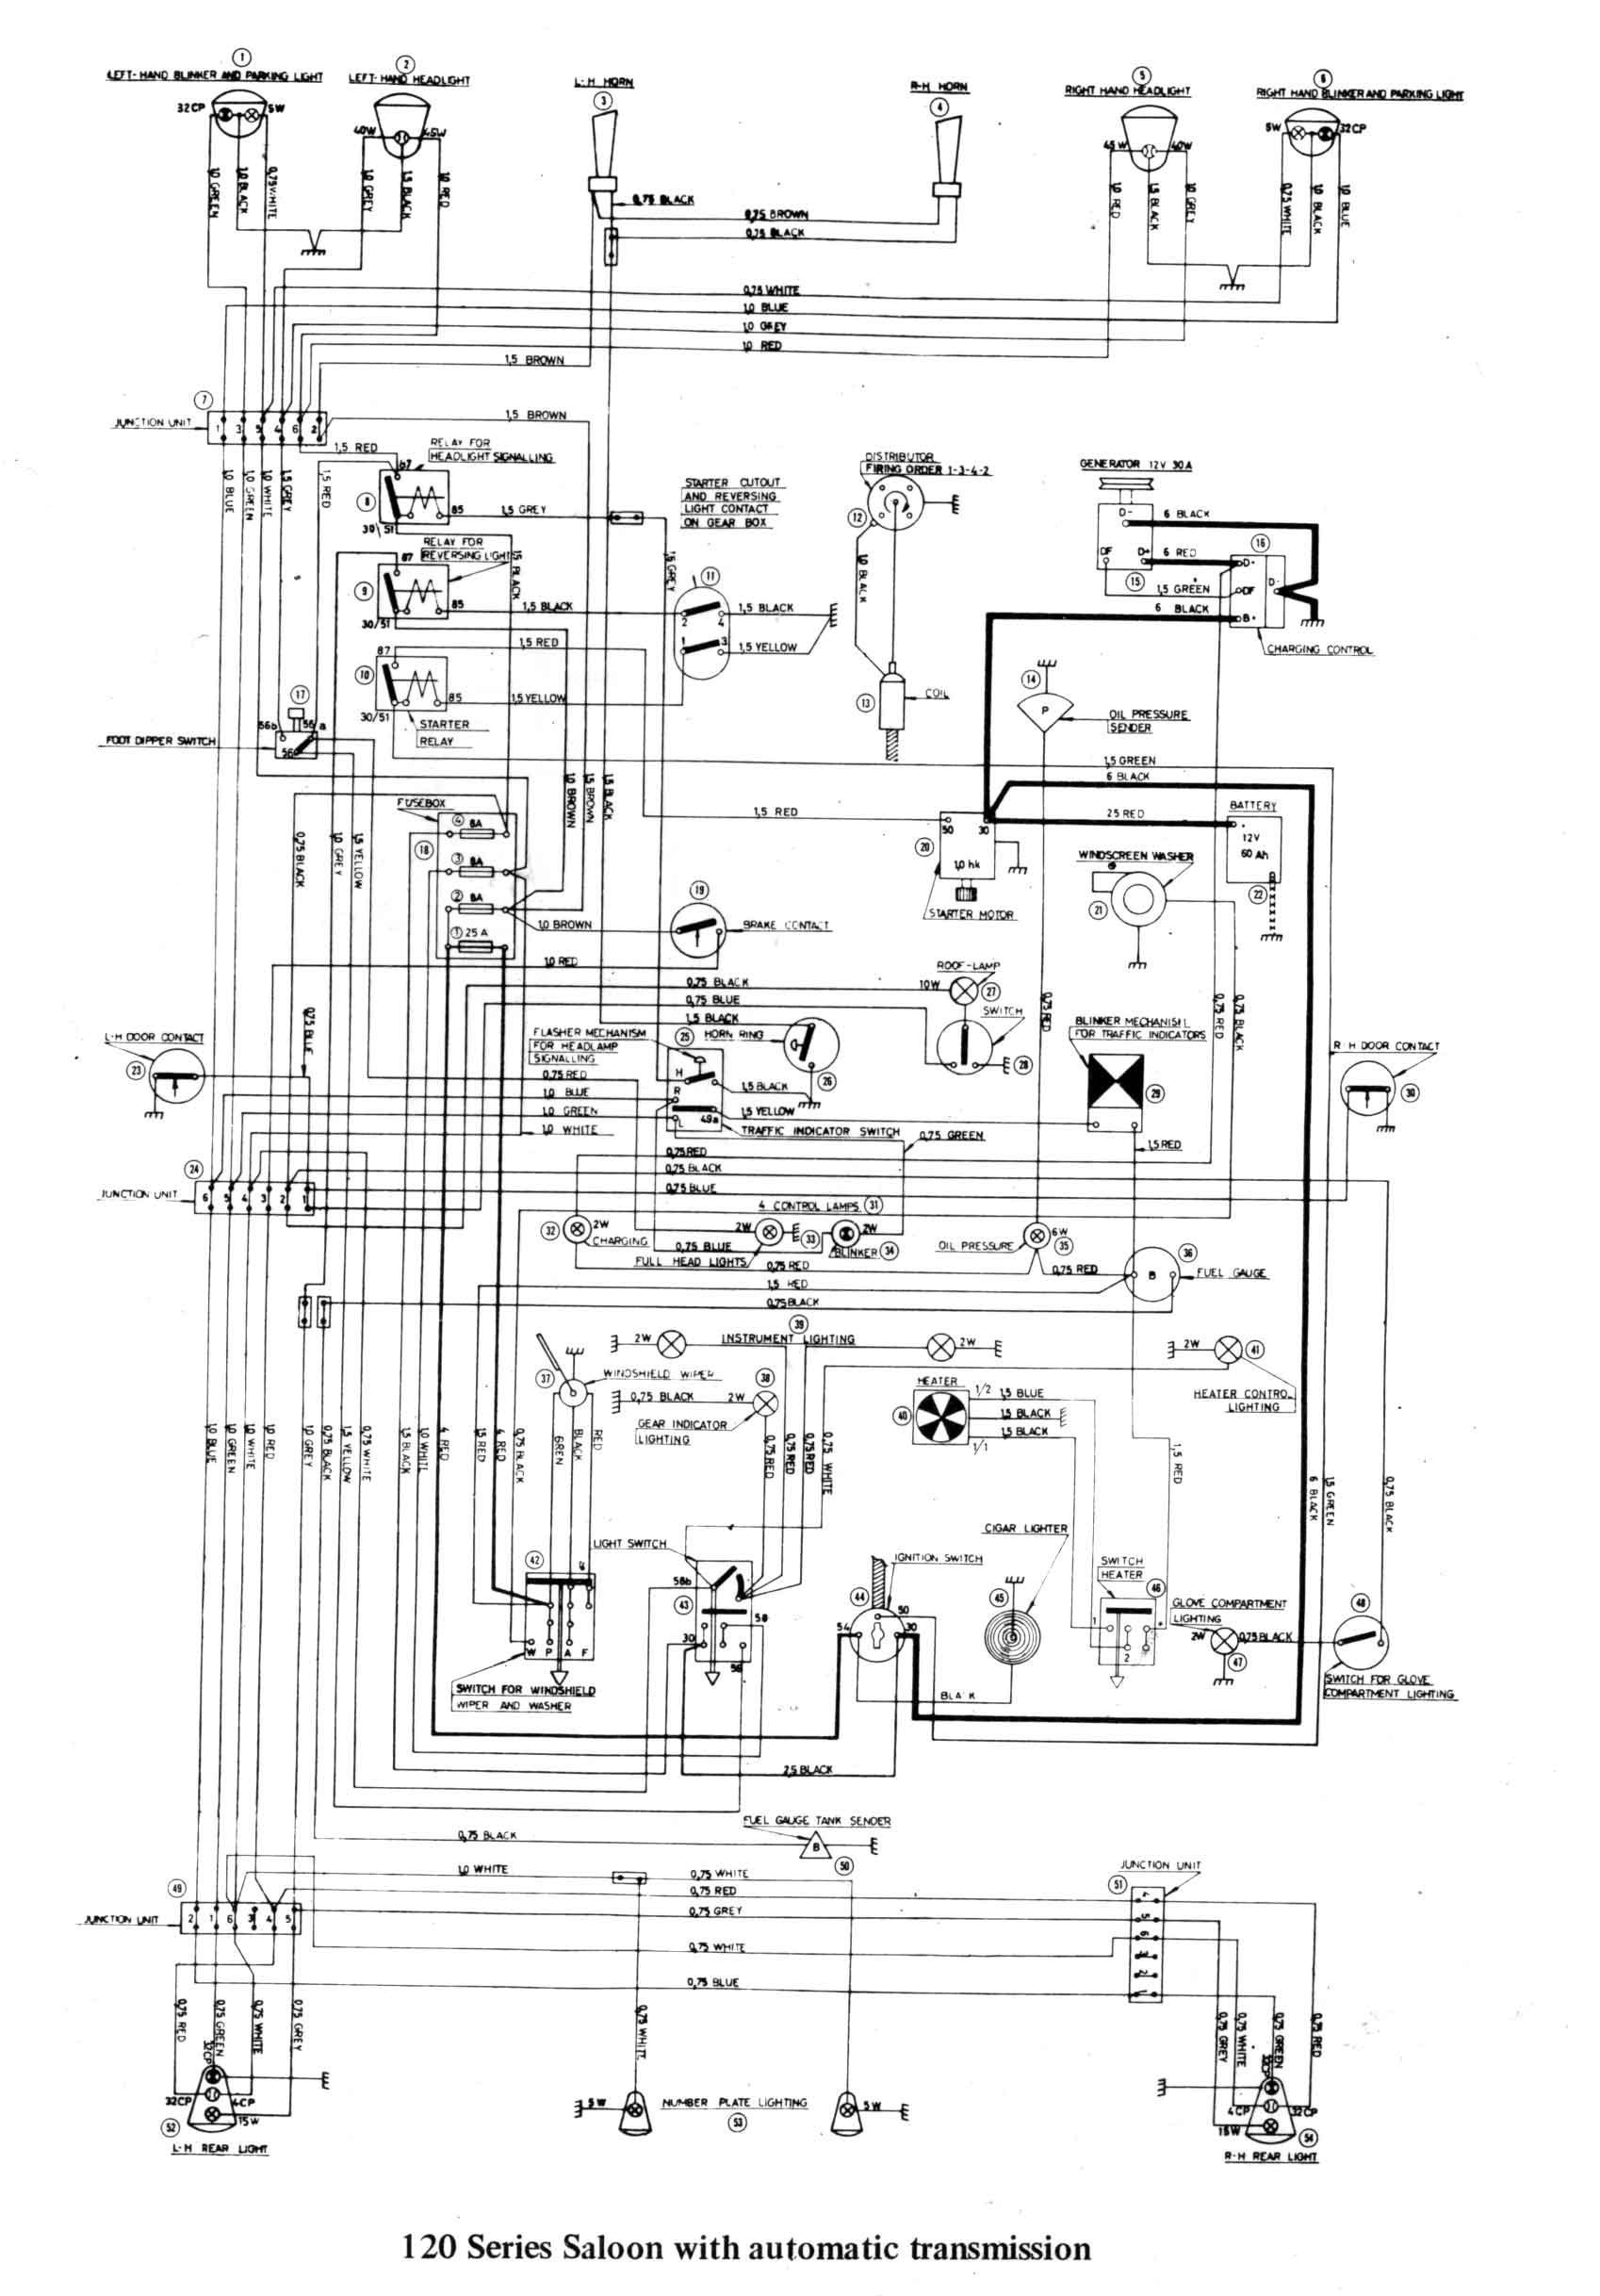 Enjoyable 1975 Gmc Wiring Diagram Wiring Library Wiring 101 Swasaxxcnl